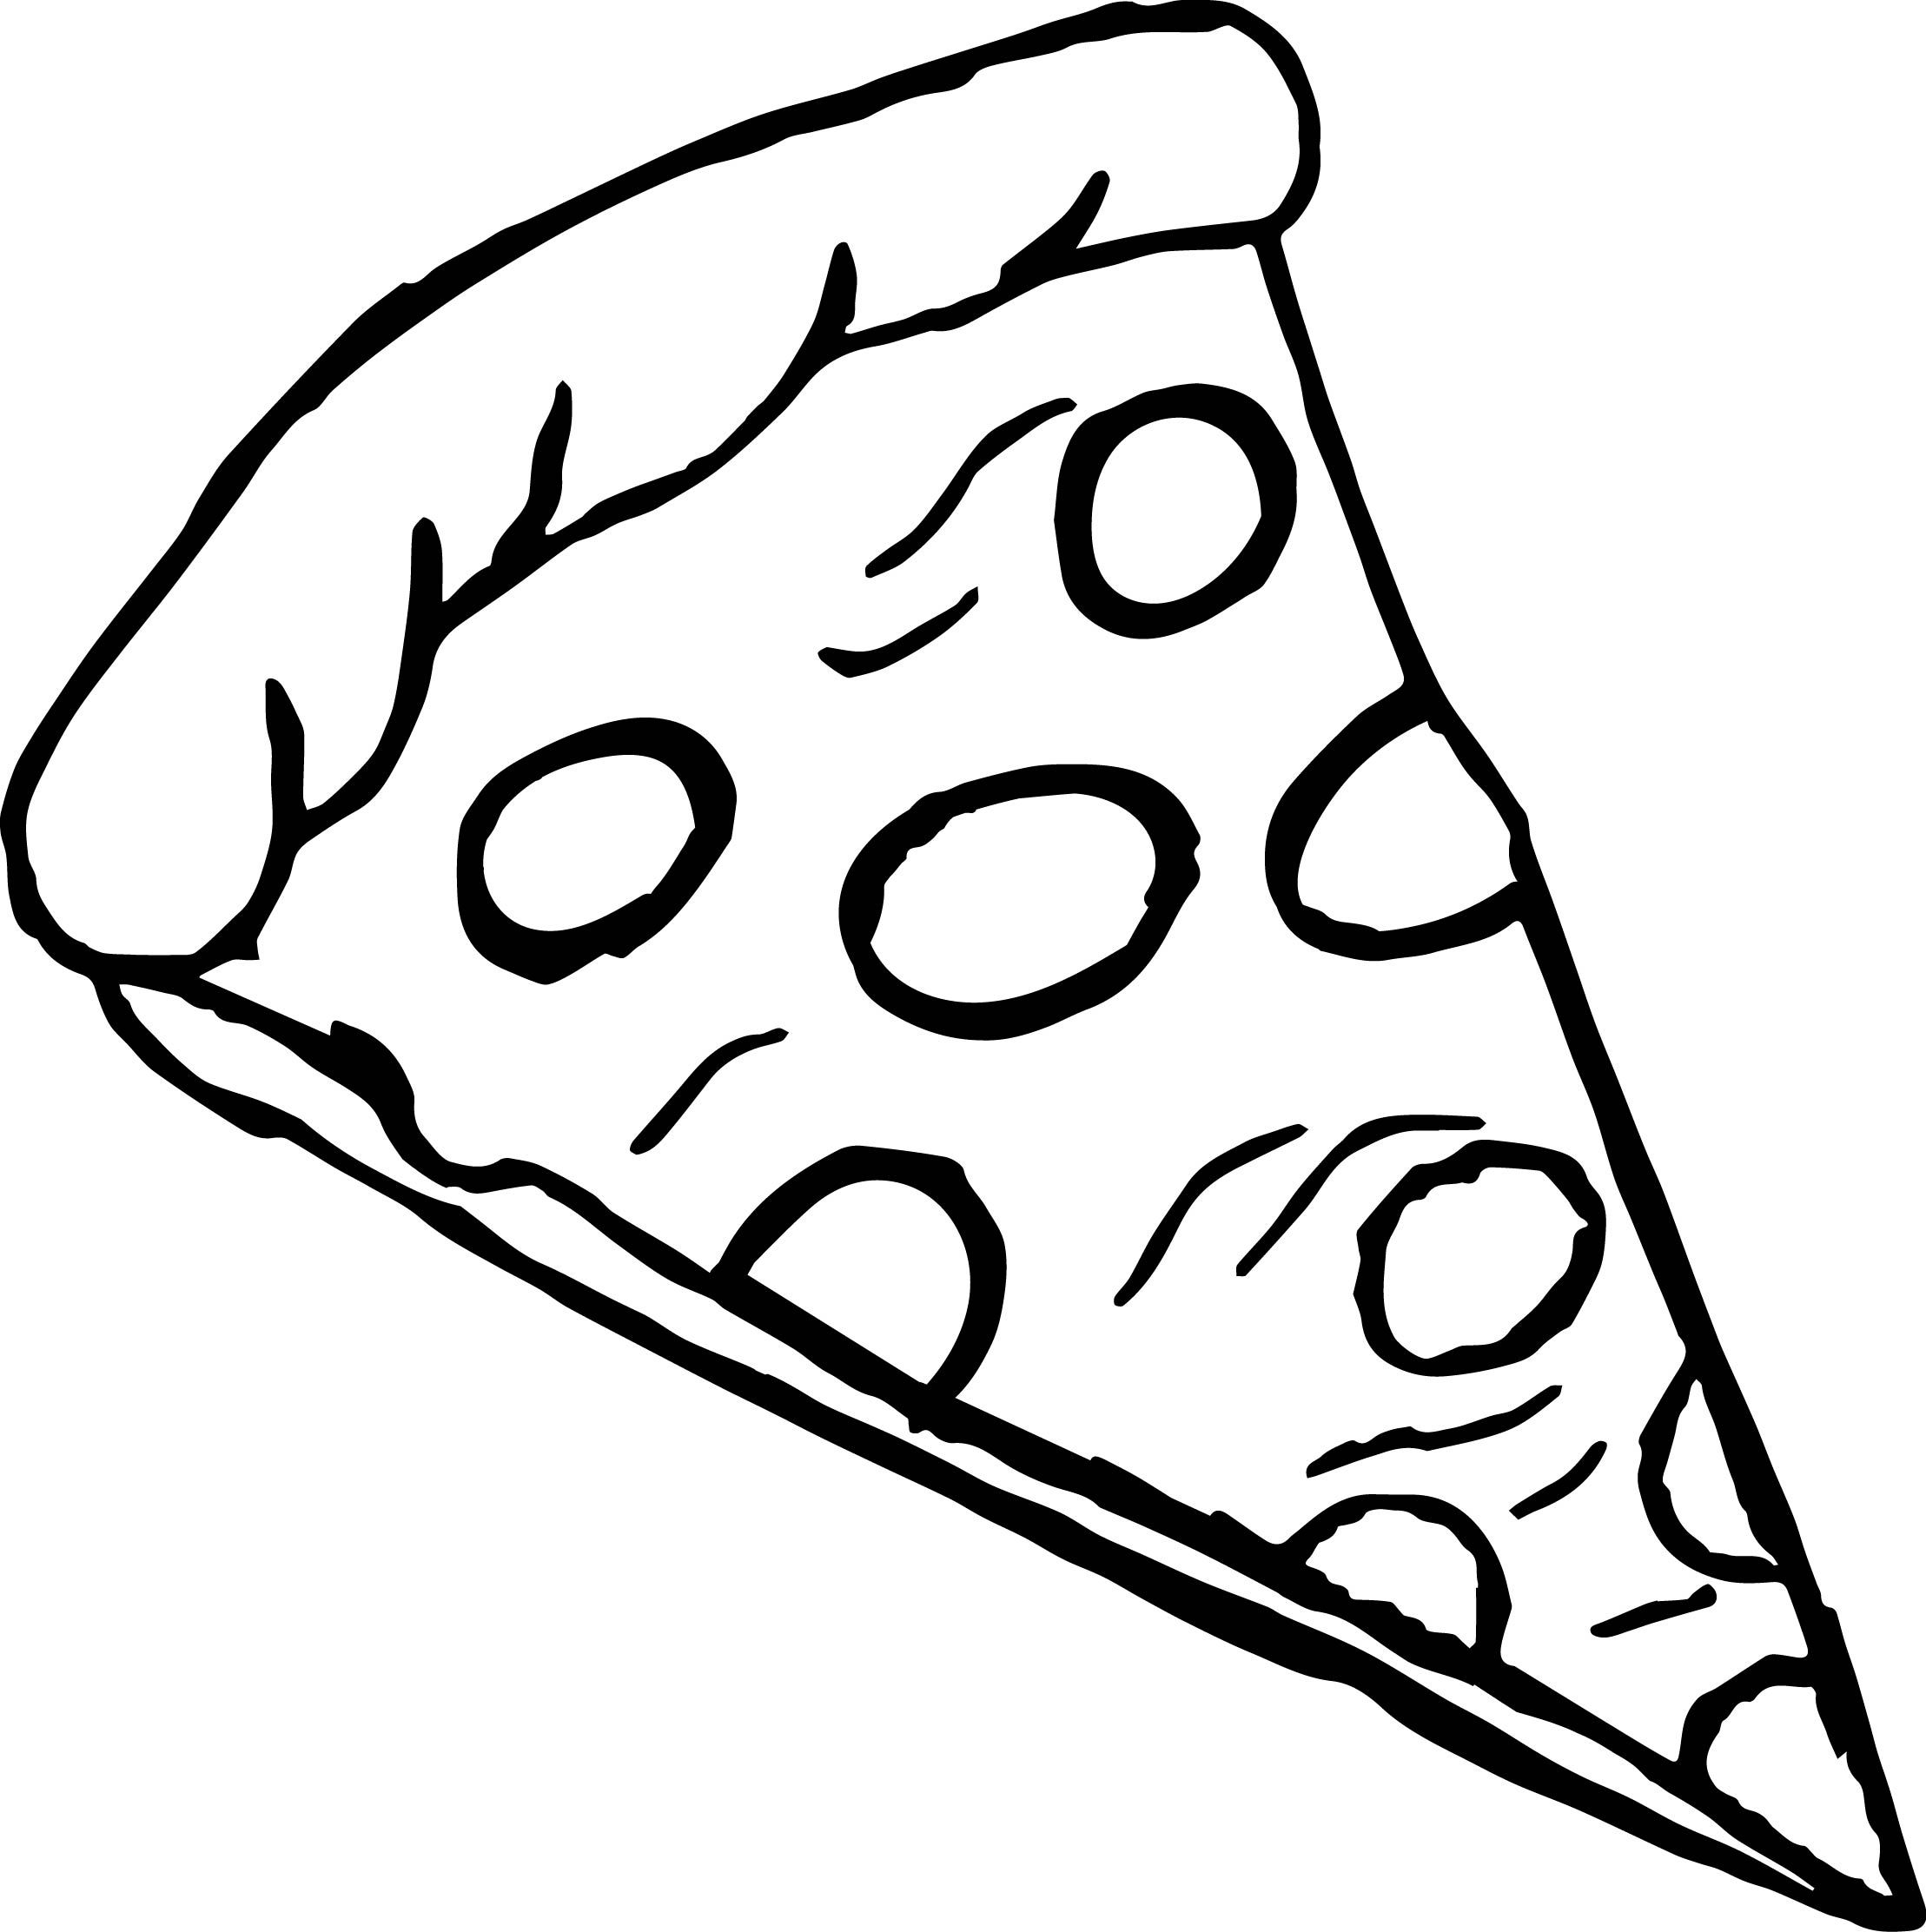 Related Image Pizza Coloring Page Flag Coloring Pages Kids Printable Coloring Pages